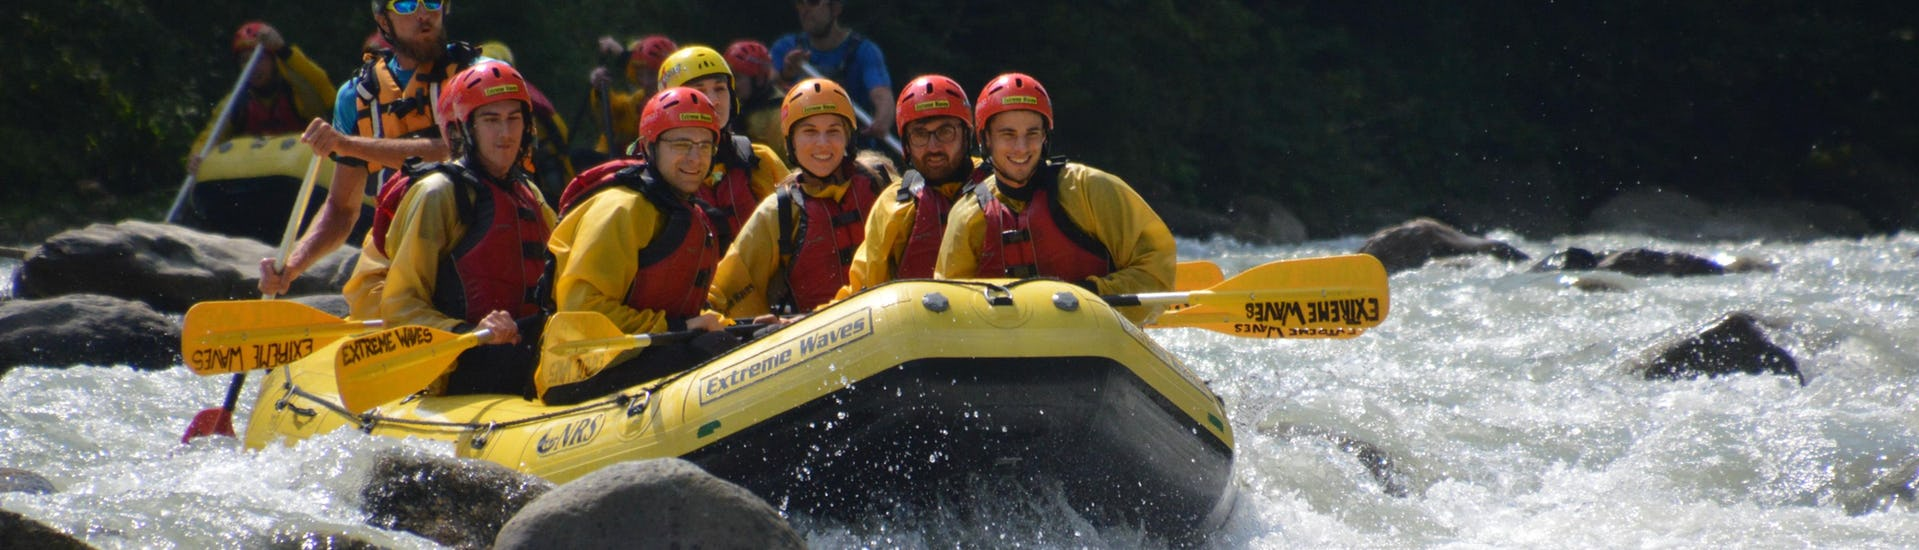 rafting-on-the-noce-for-groups-12-people---classic-extreme-waves